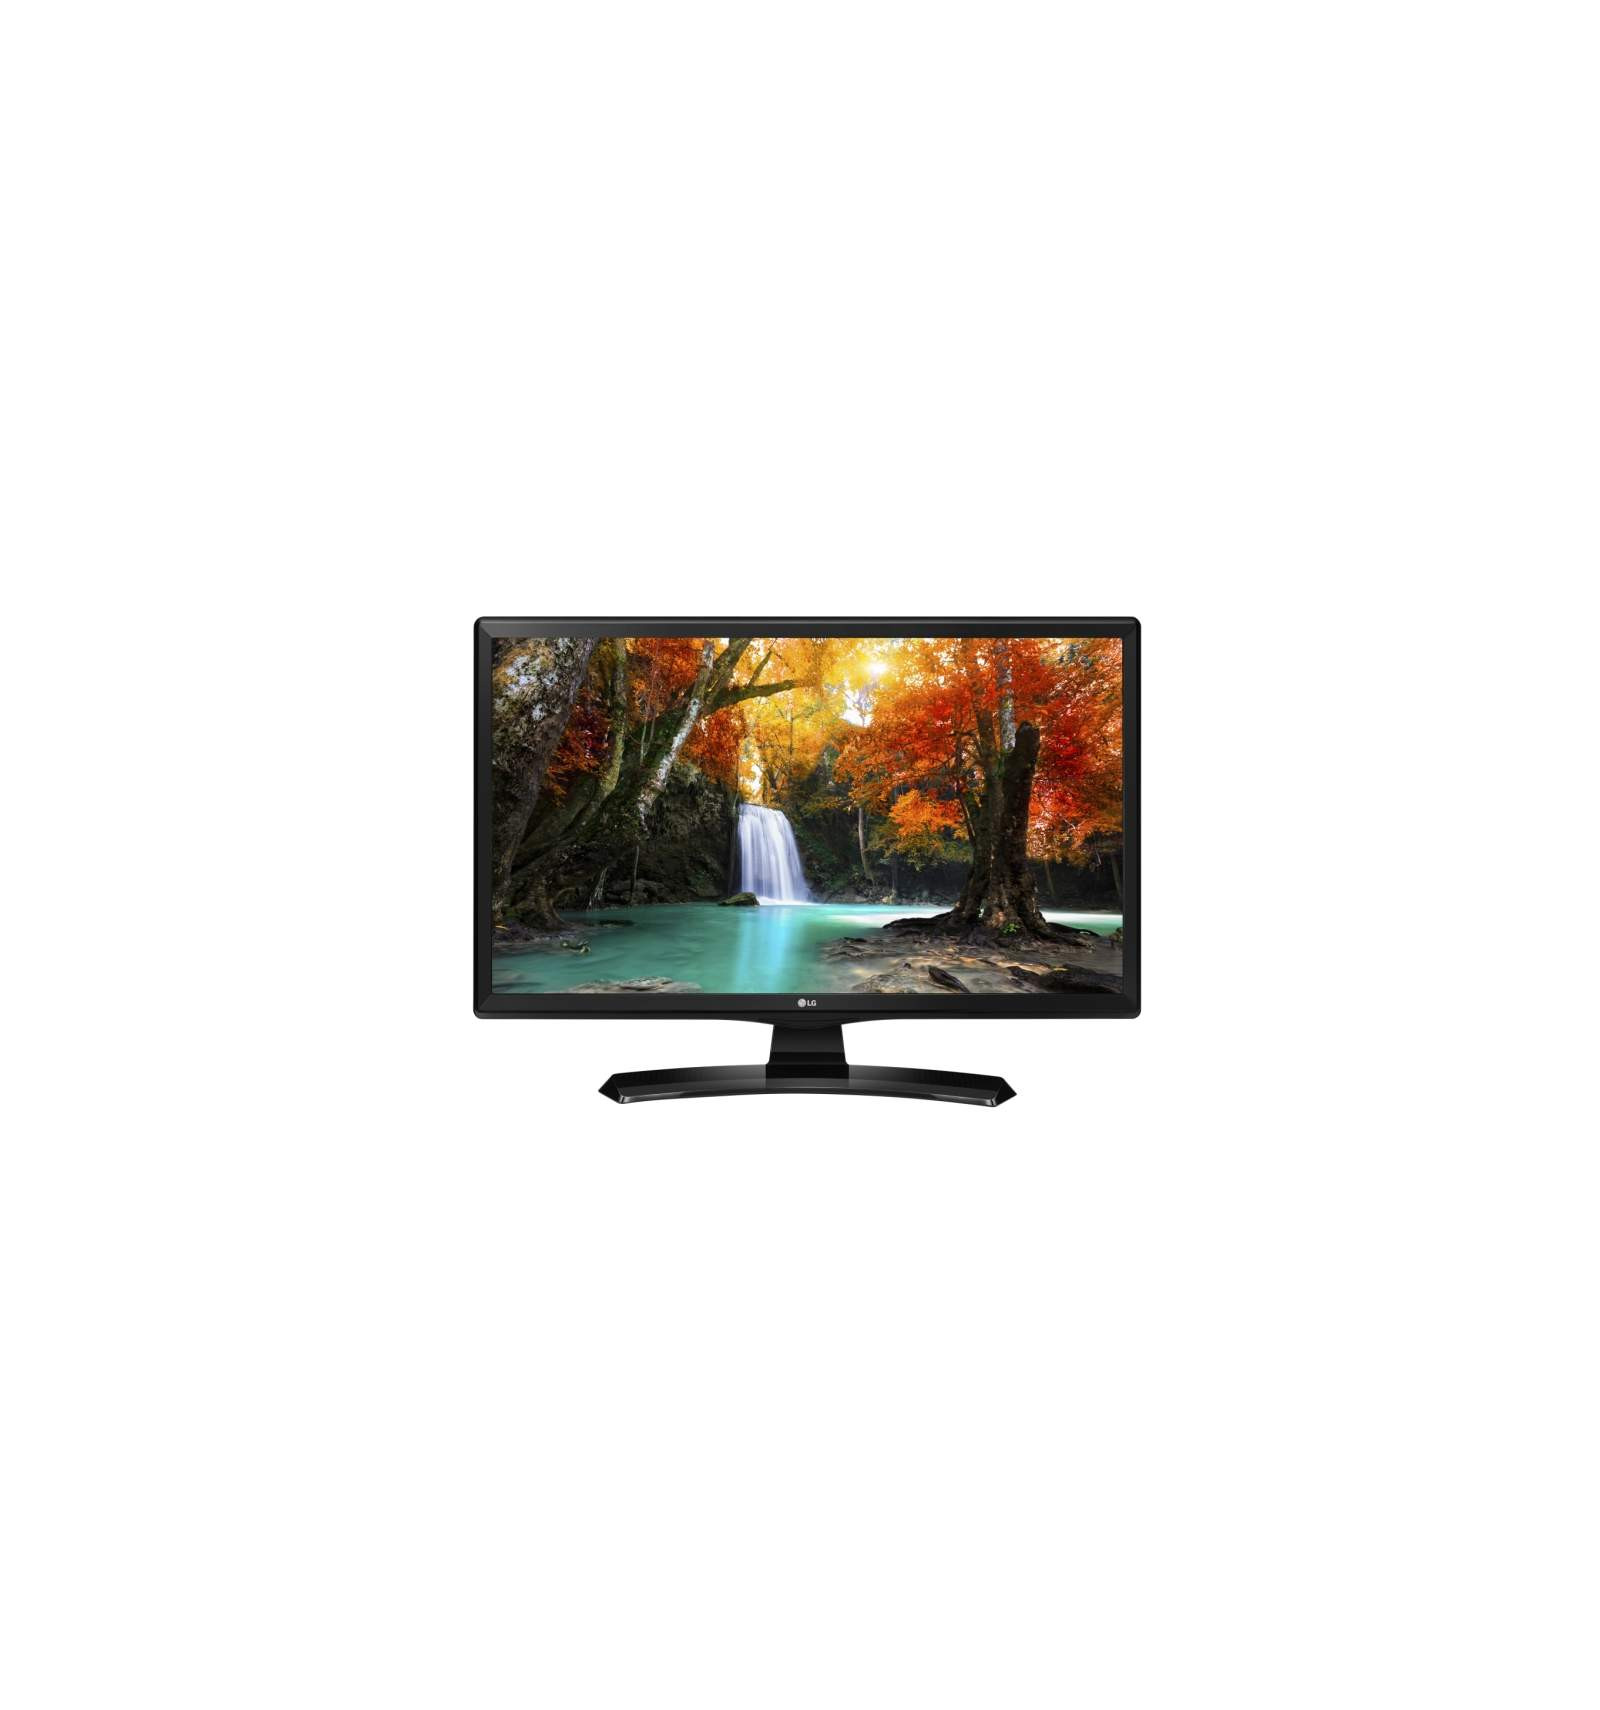 "Televisor 32 Pulgadas Full Hd Fresco Tv Full Hd Led 28mt49vf Pz 28"" Lg Of 34  Brillante Televisor 32 Pulgadas Full Hd"